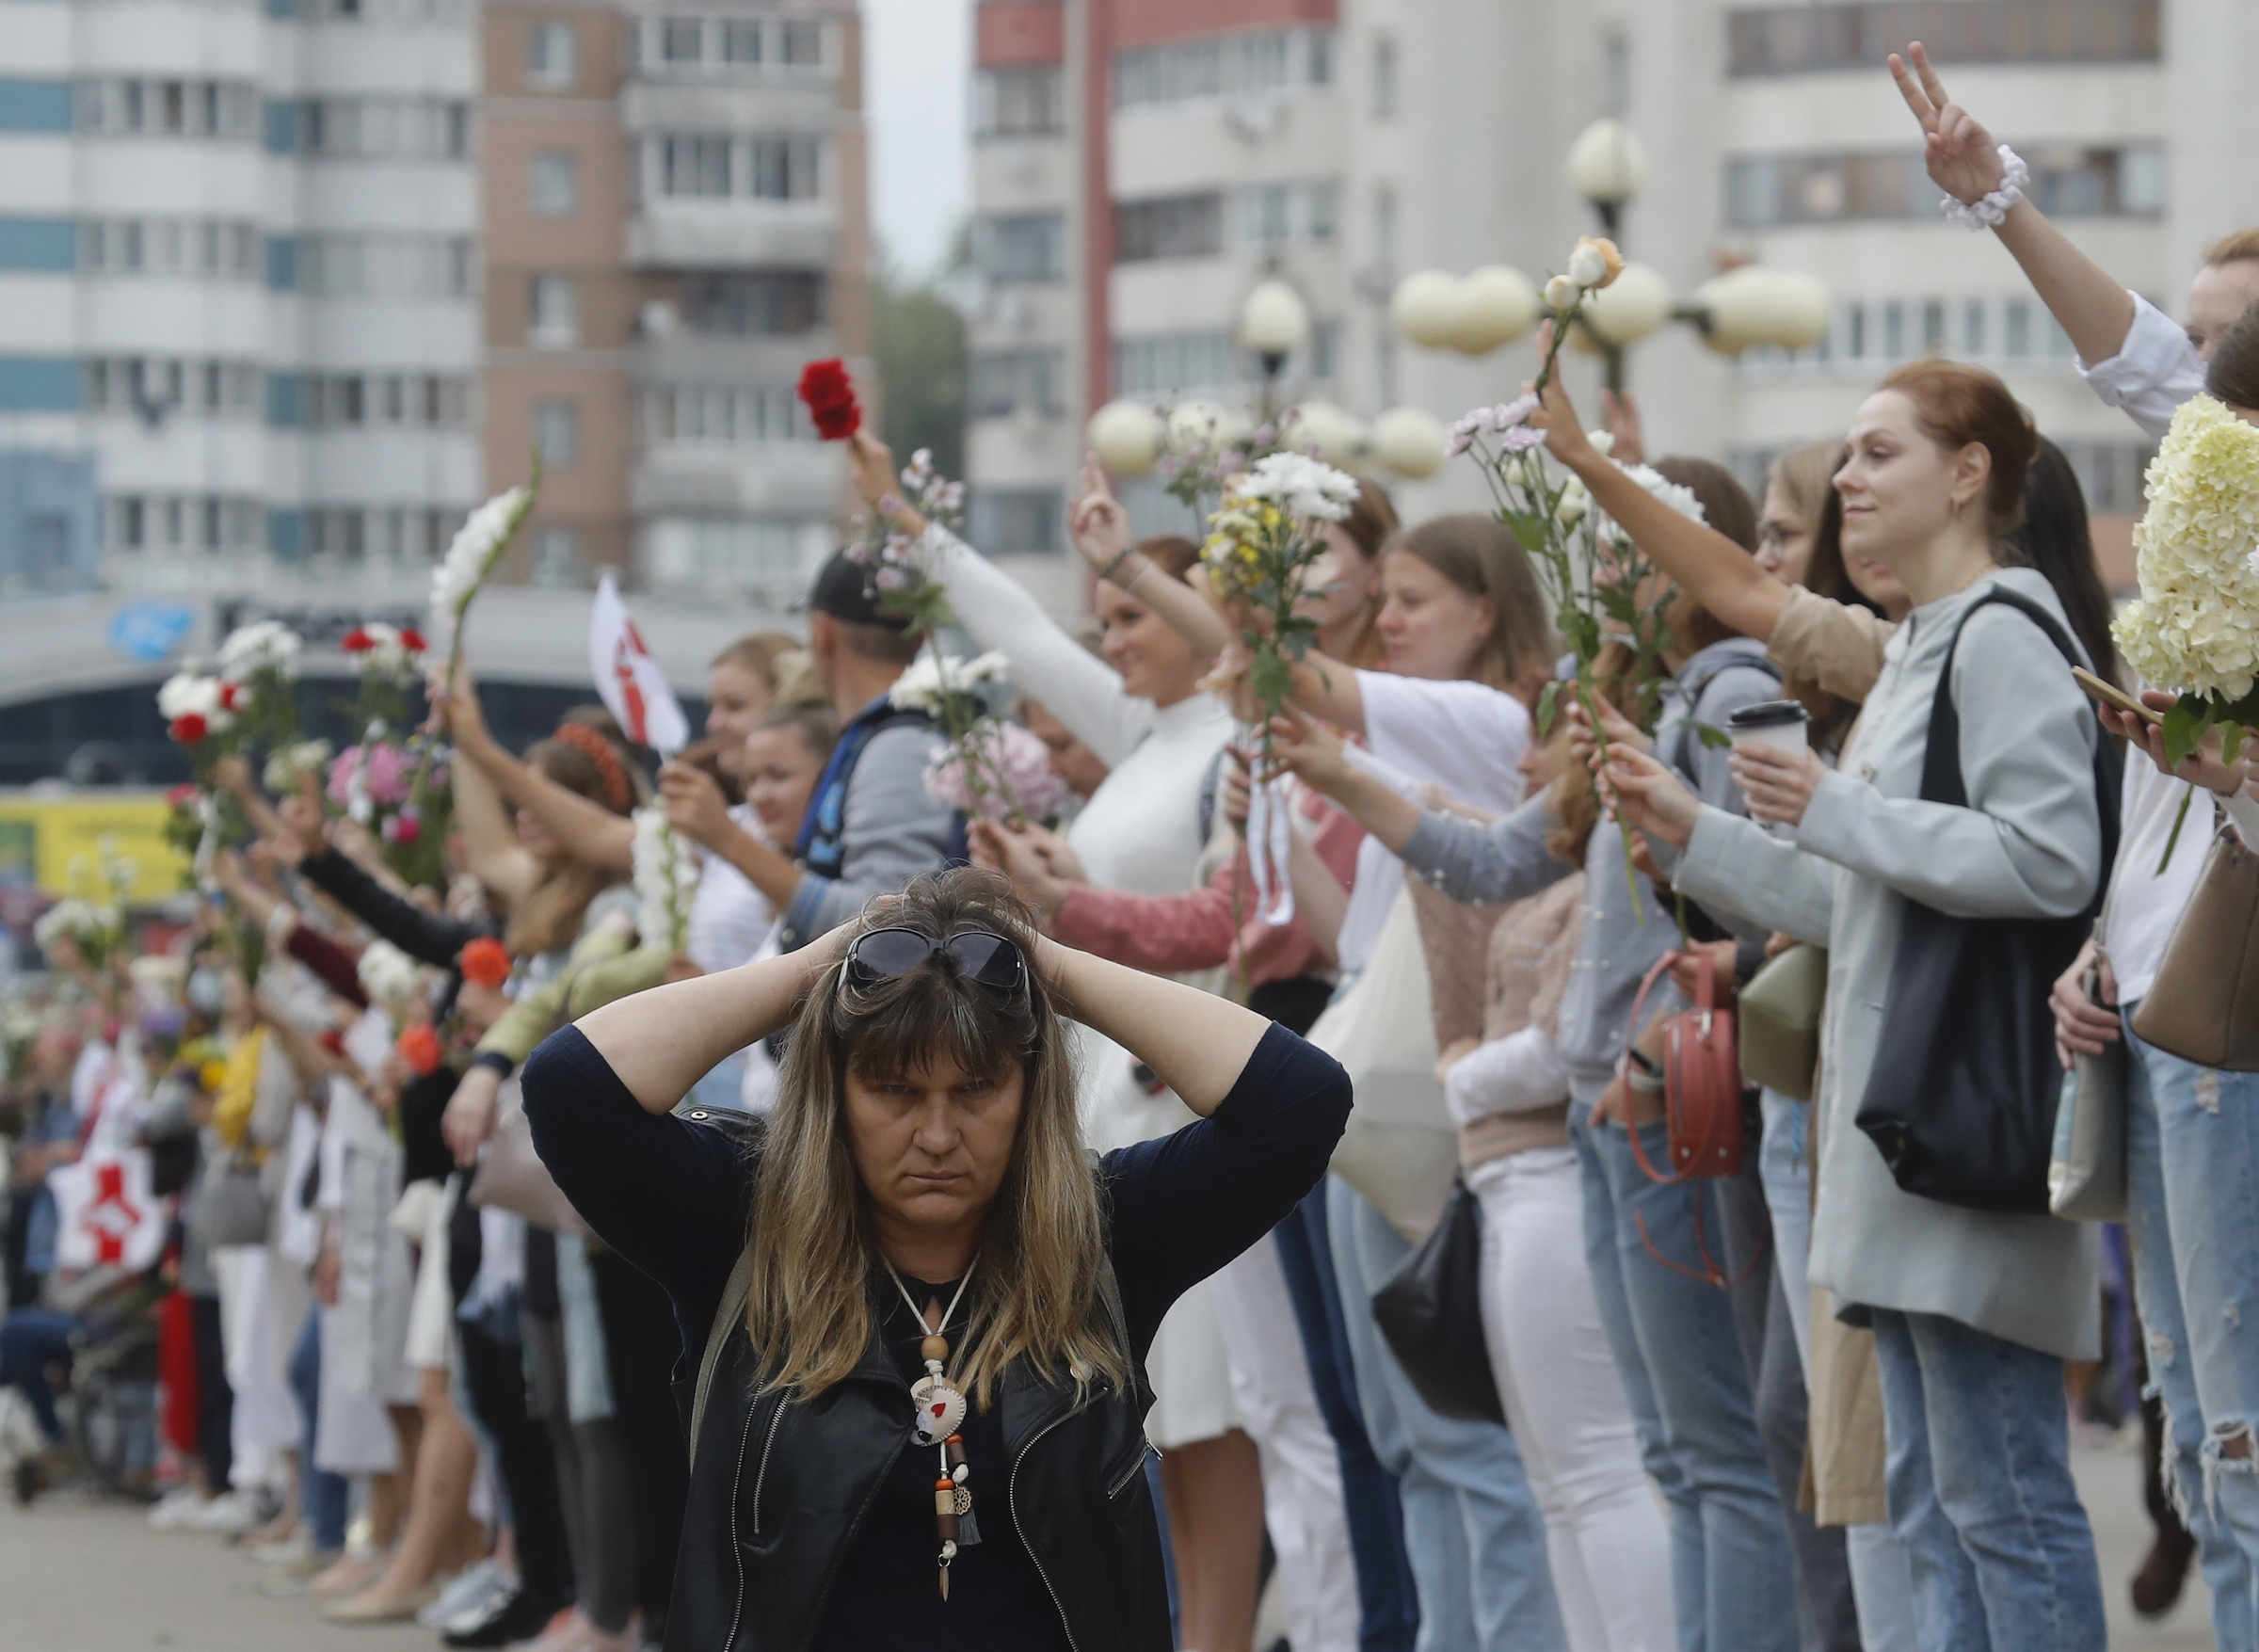 A woman kneels on the ground as people create a human chain during a protest in Minsk, Belarus, on Aug. 22, 2020.